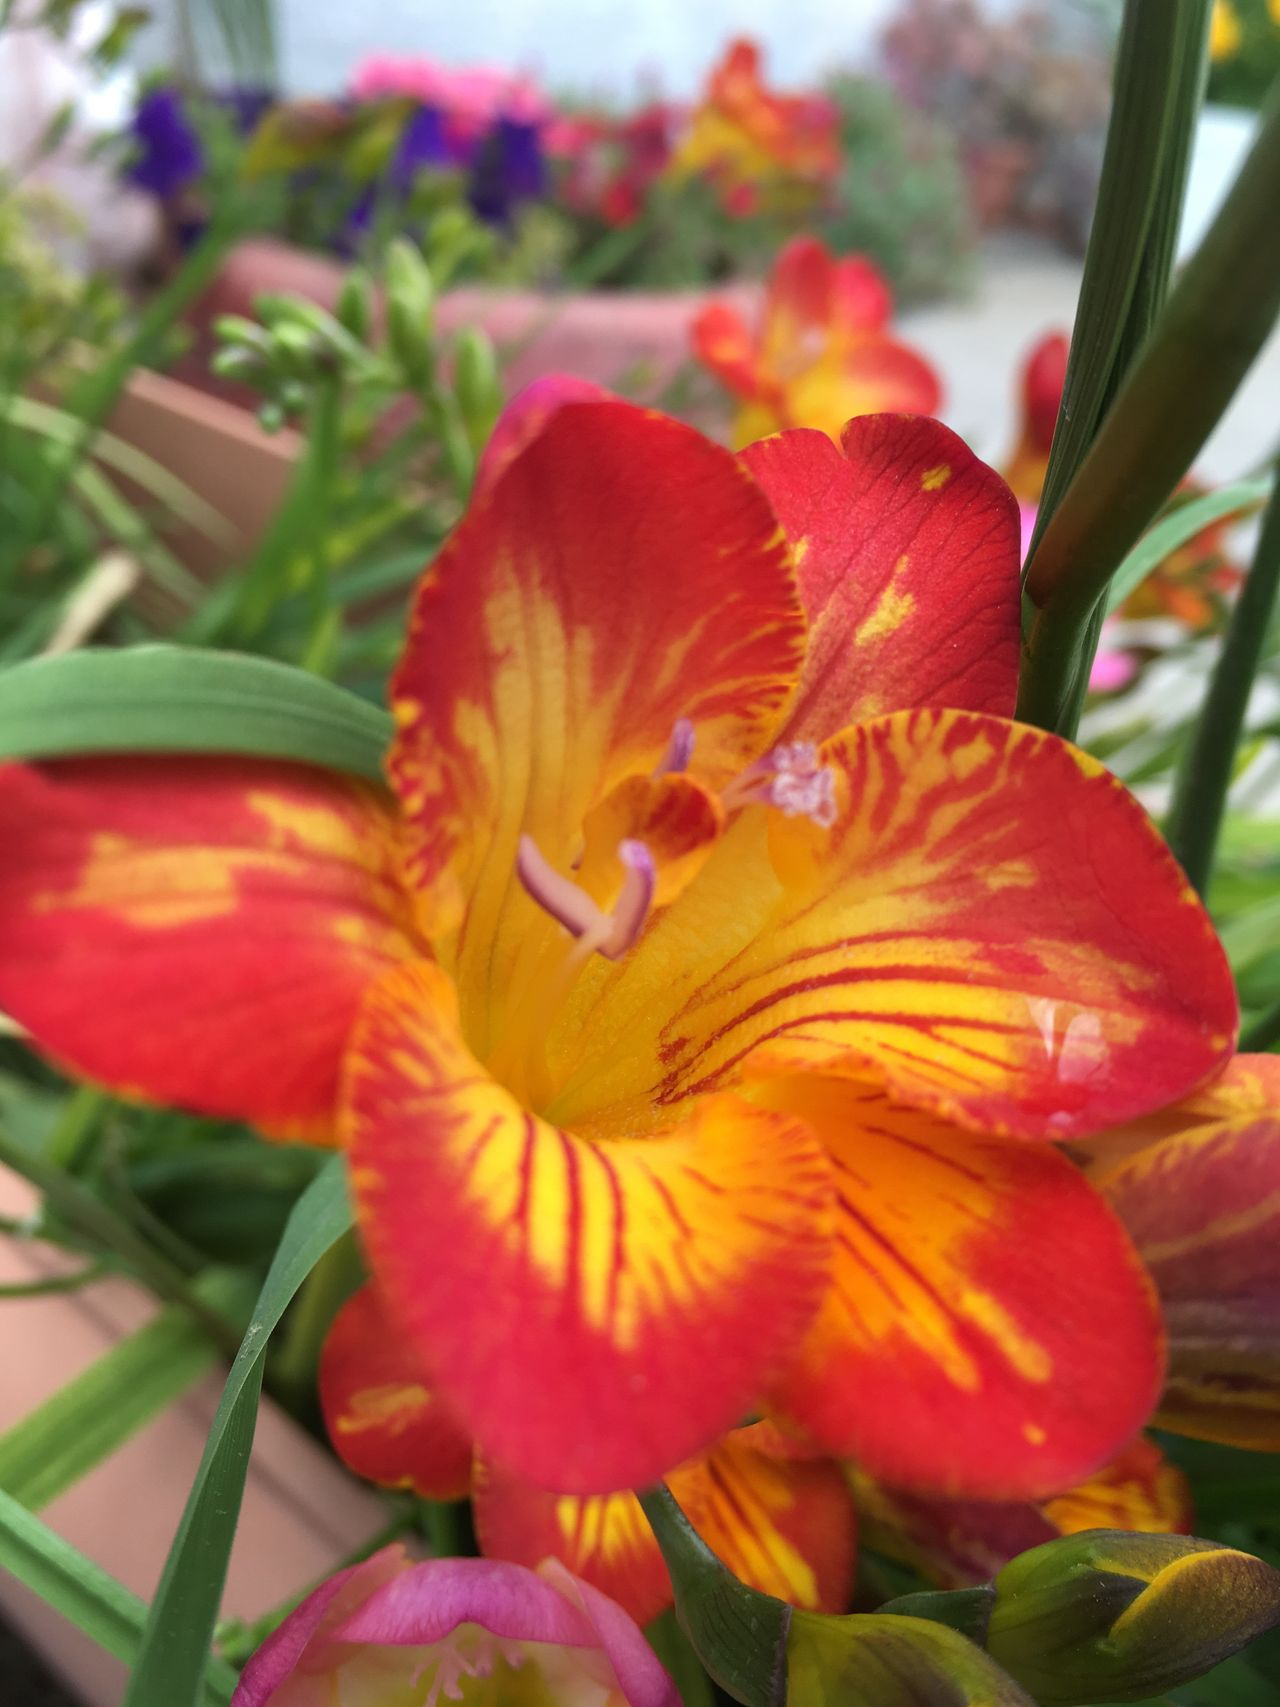 Flower Petal Fragility Beauty In Nature Freshness Nature Flower Head Growth Plant Blooming Close-up No People Day Outdoors Day Lily